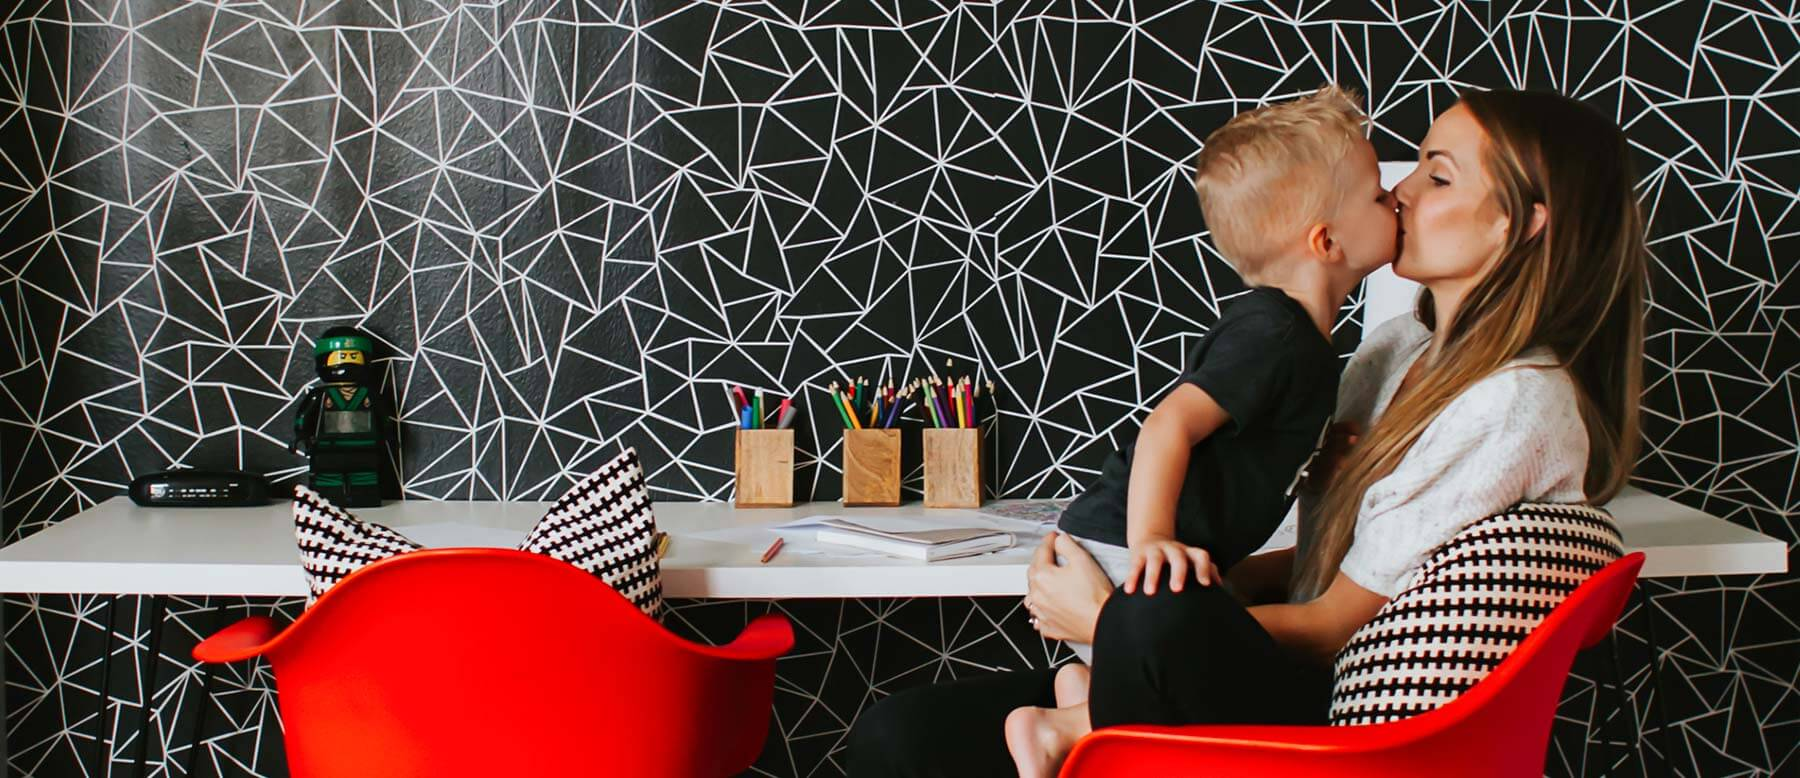 Huge Selection Of Designer Wallpaper Patterns And Styles